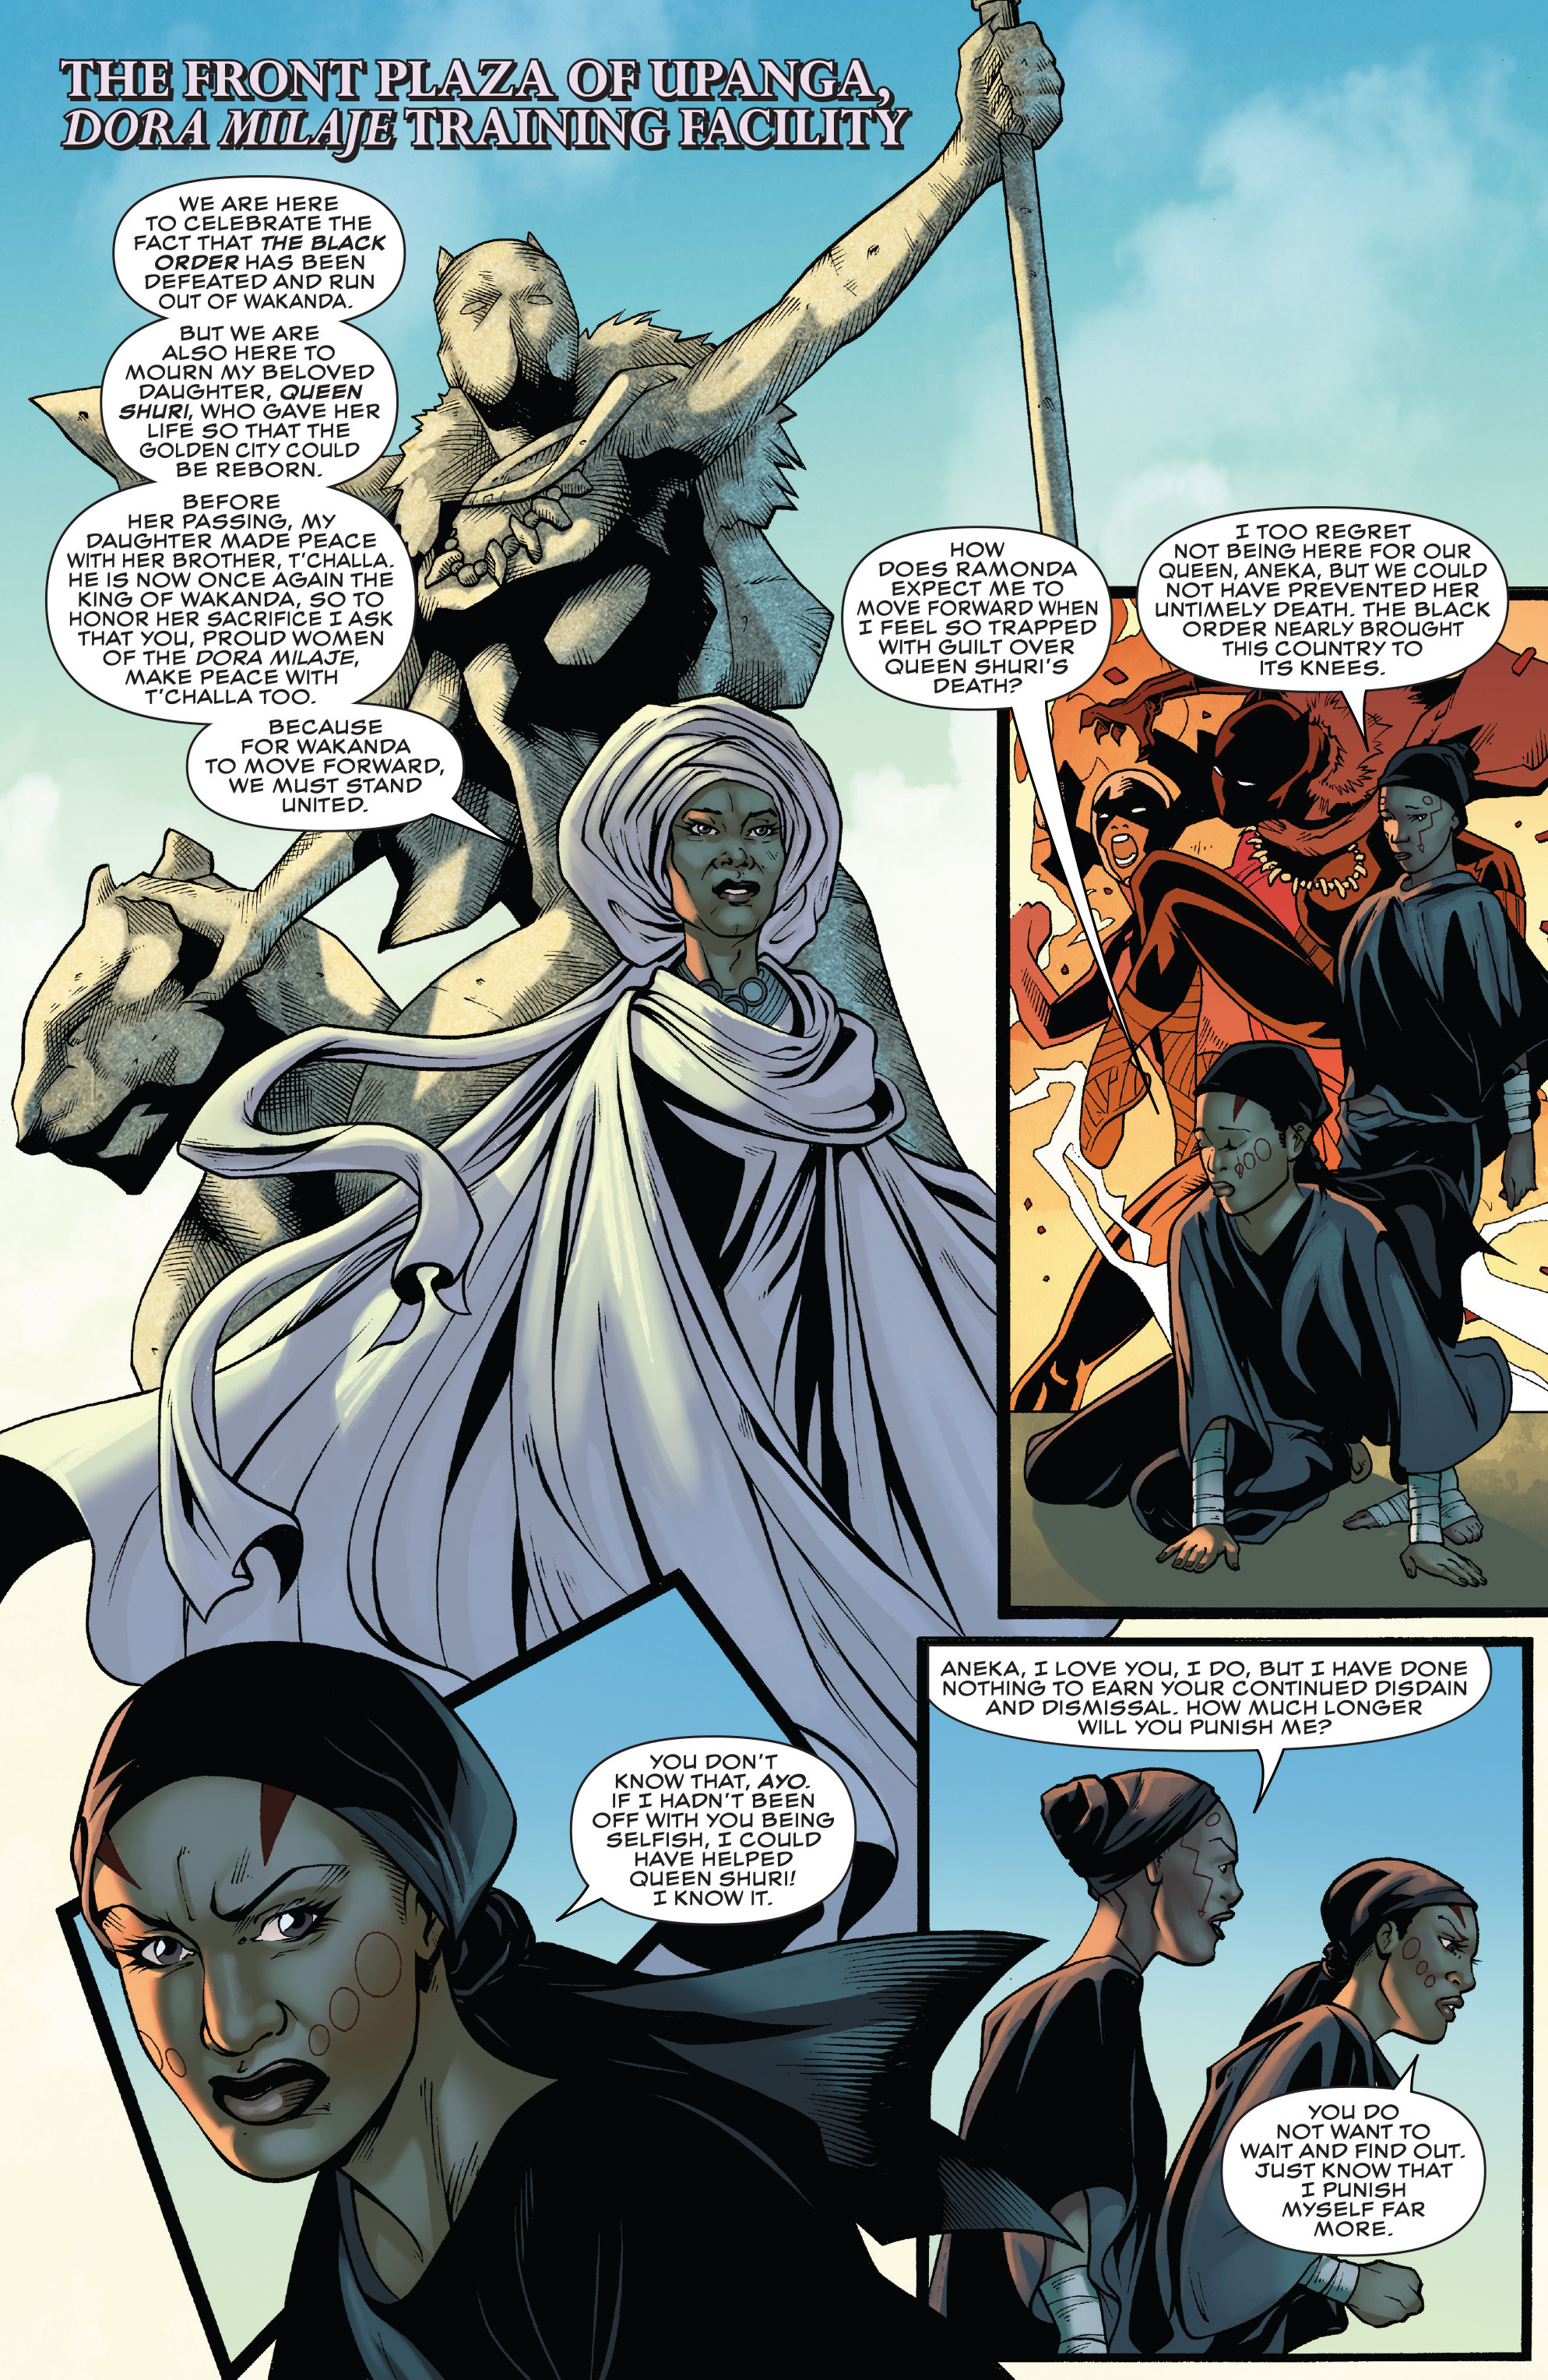 Read online Black Panther: World of Wakanda comic -  Issue #4 - 4